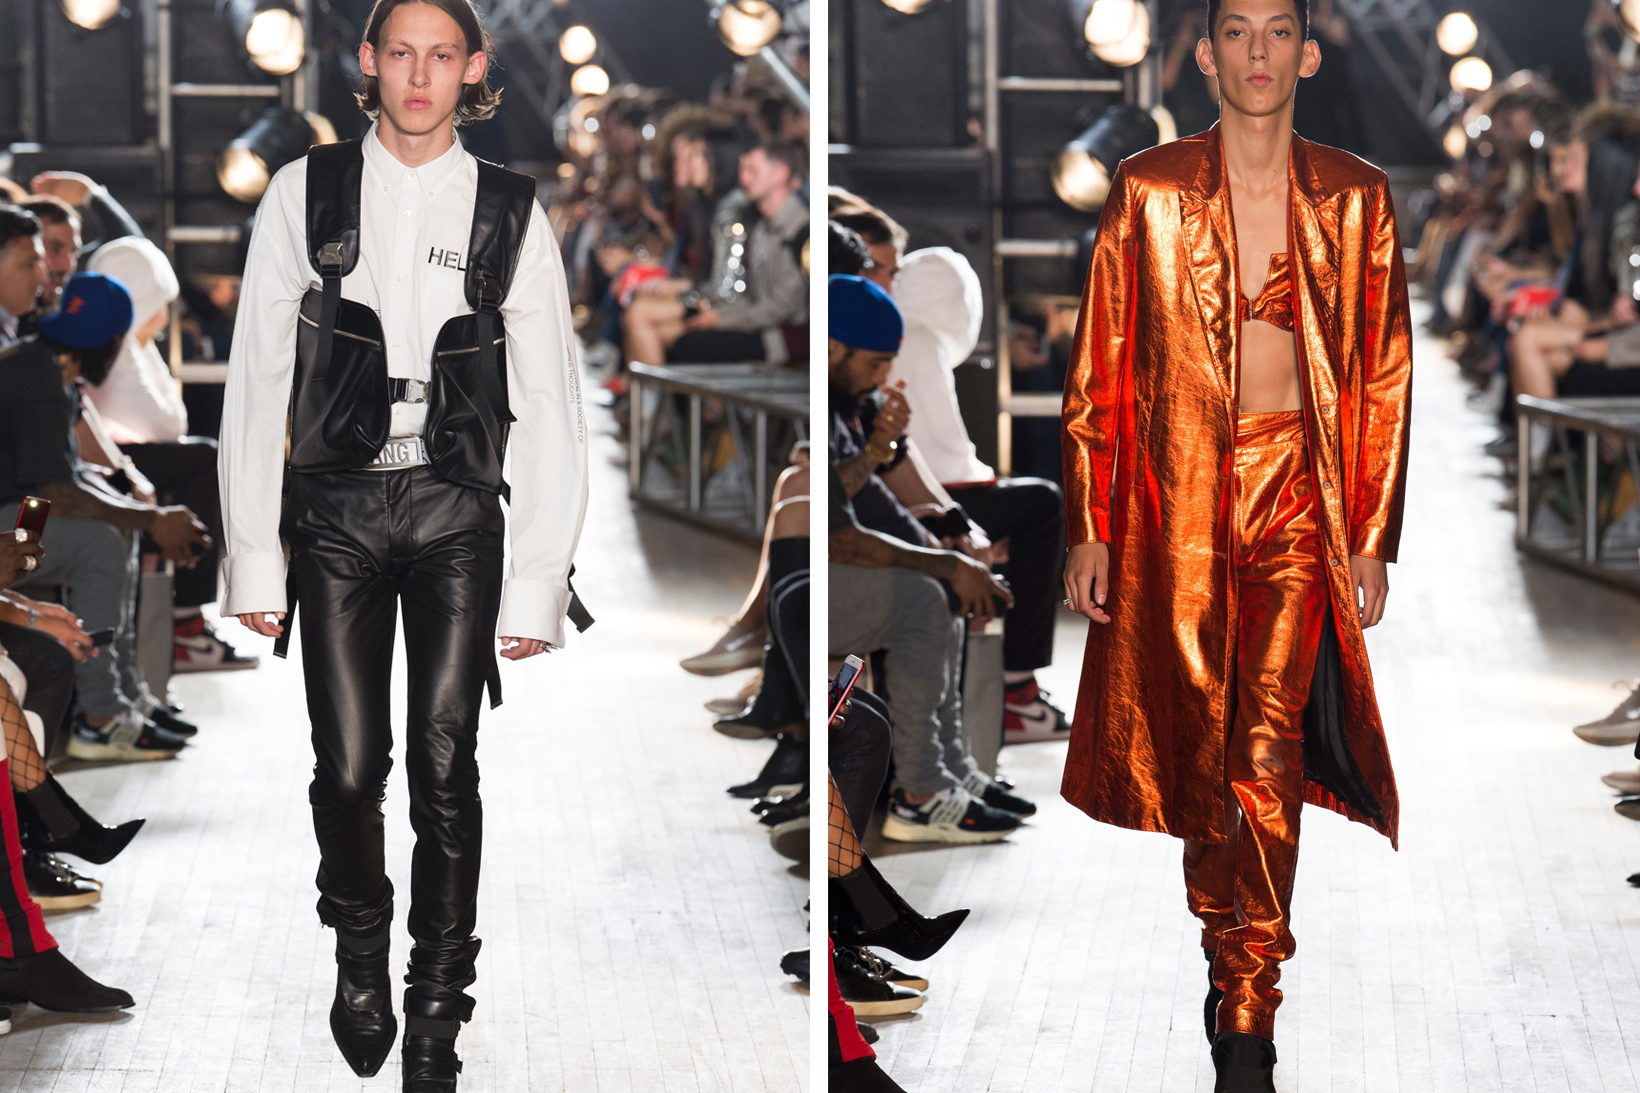 3f593426df55 Arguably one of the week's buzziest affairs, Helmut Lang's debut collection  at Shayne Oliver's design helm, and direction under the house's ...